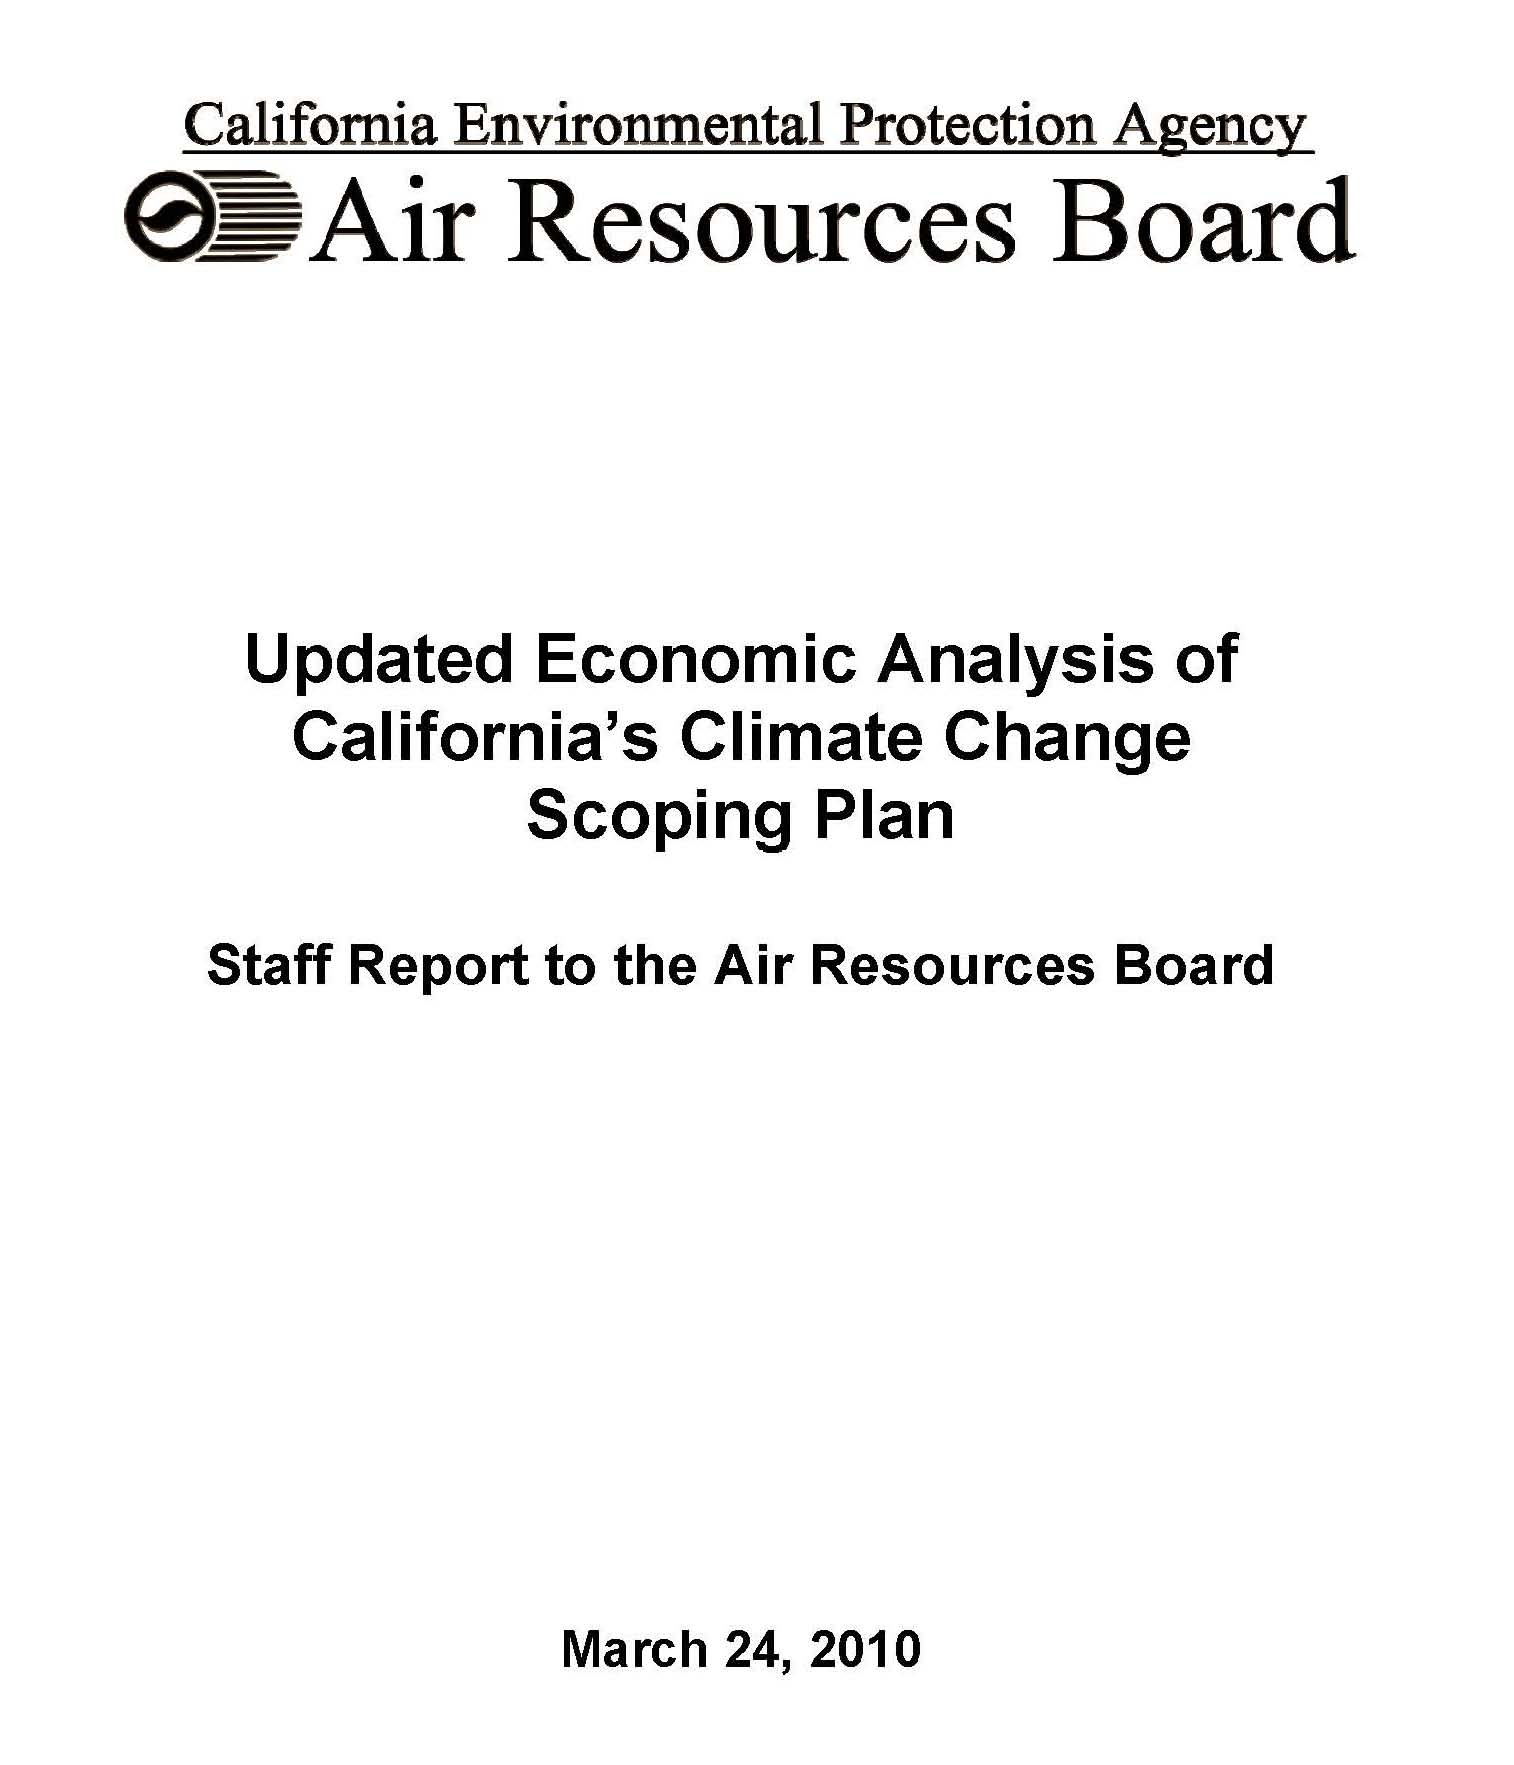 AB 32 Scoping Plan Economic Analysis